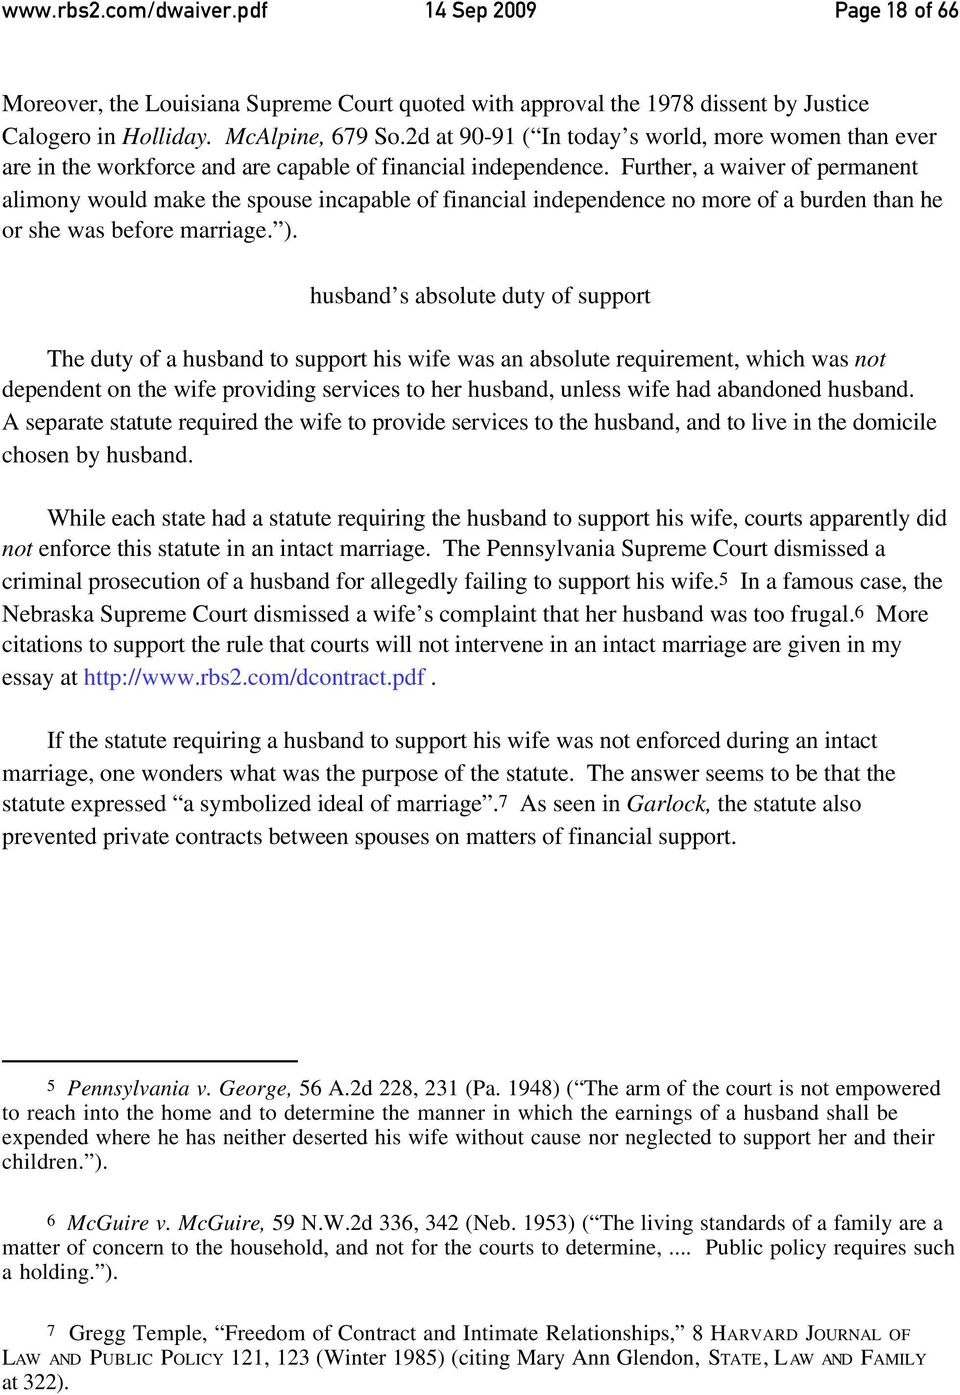 contracts between spouses